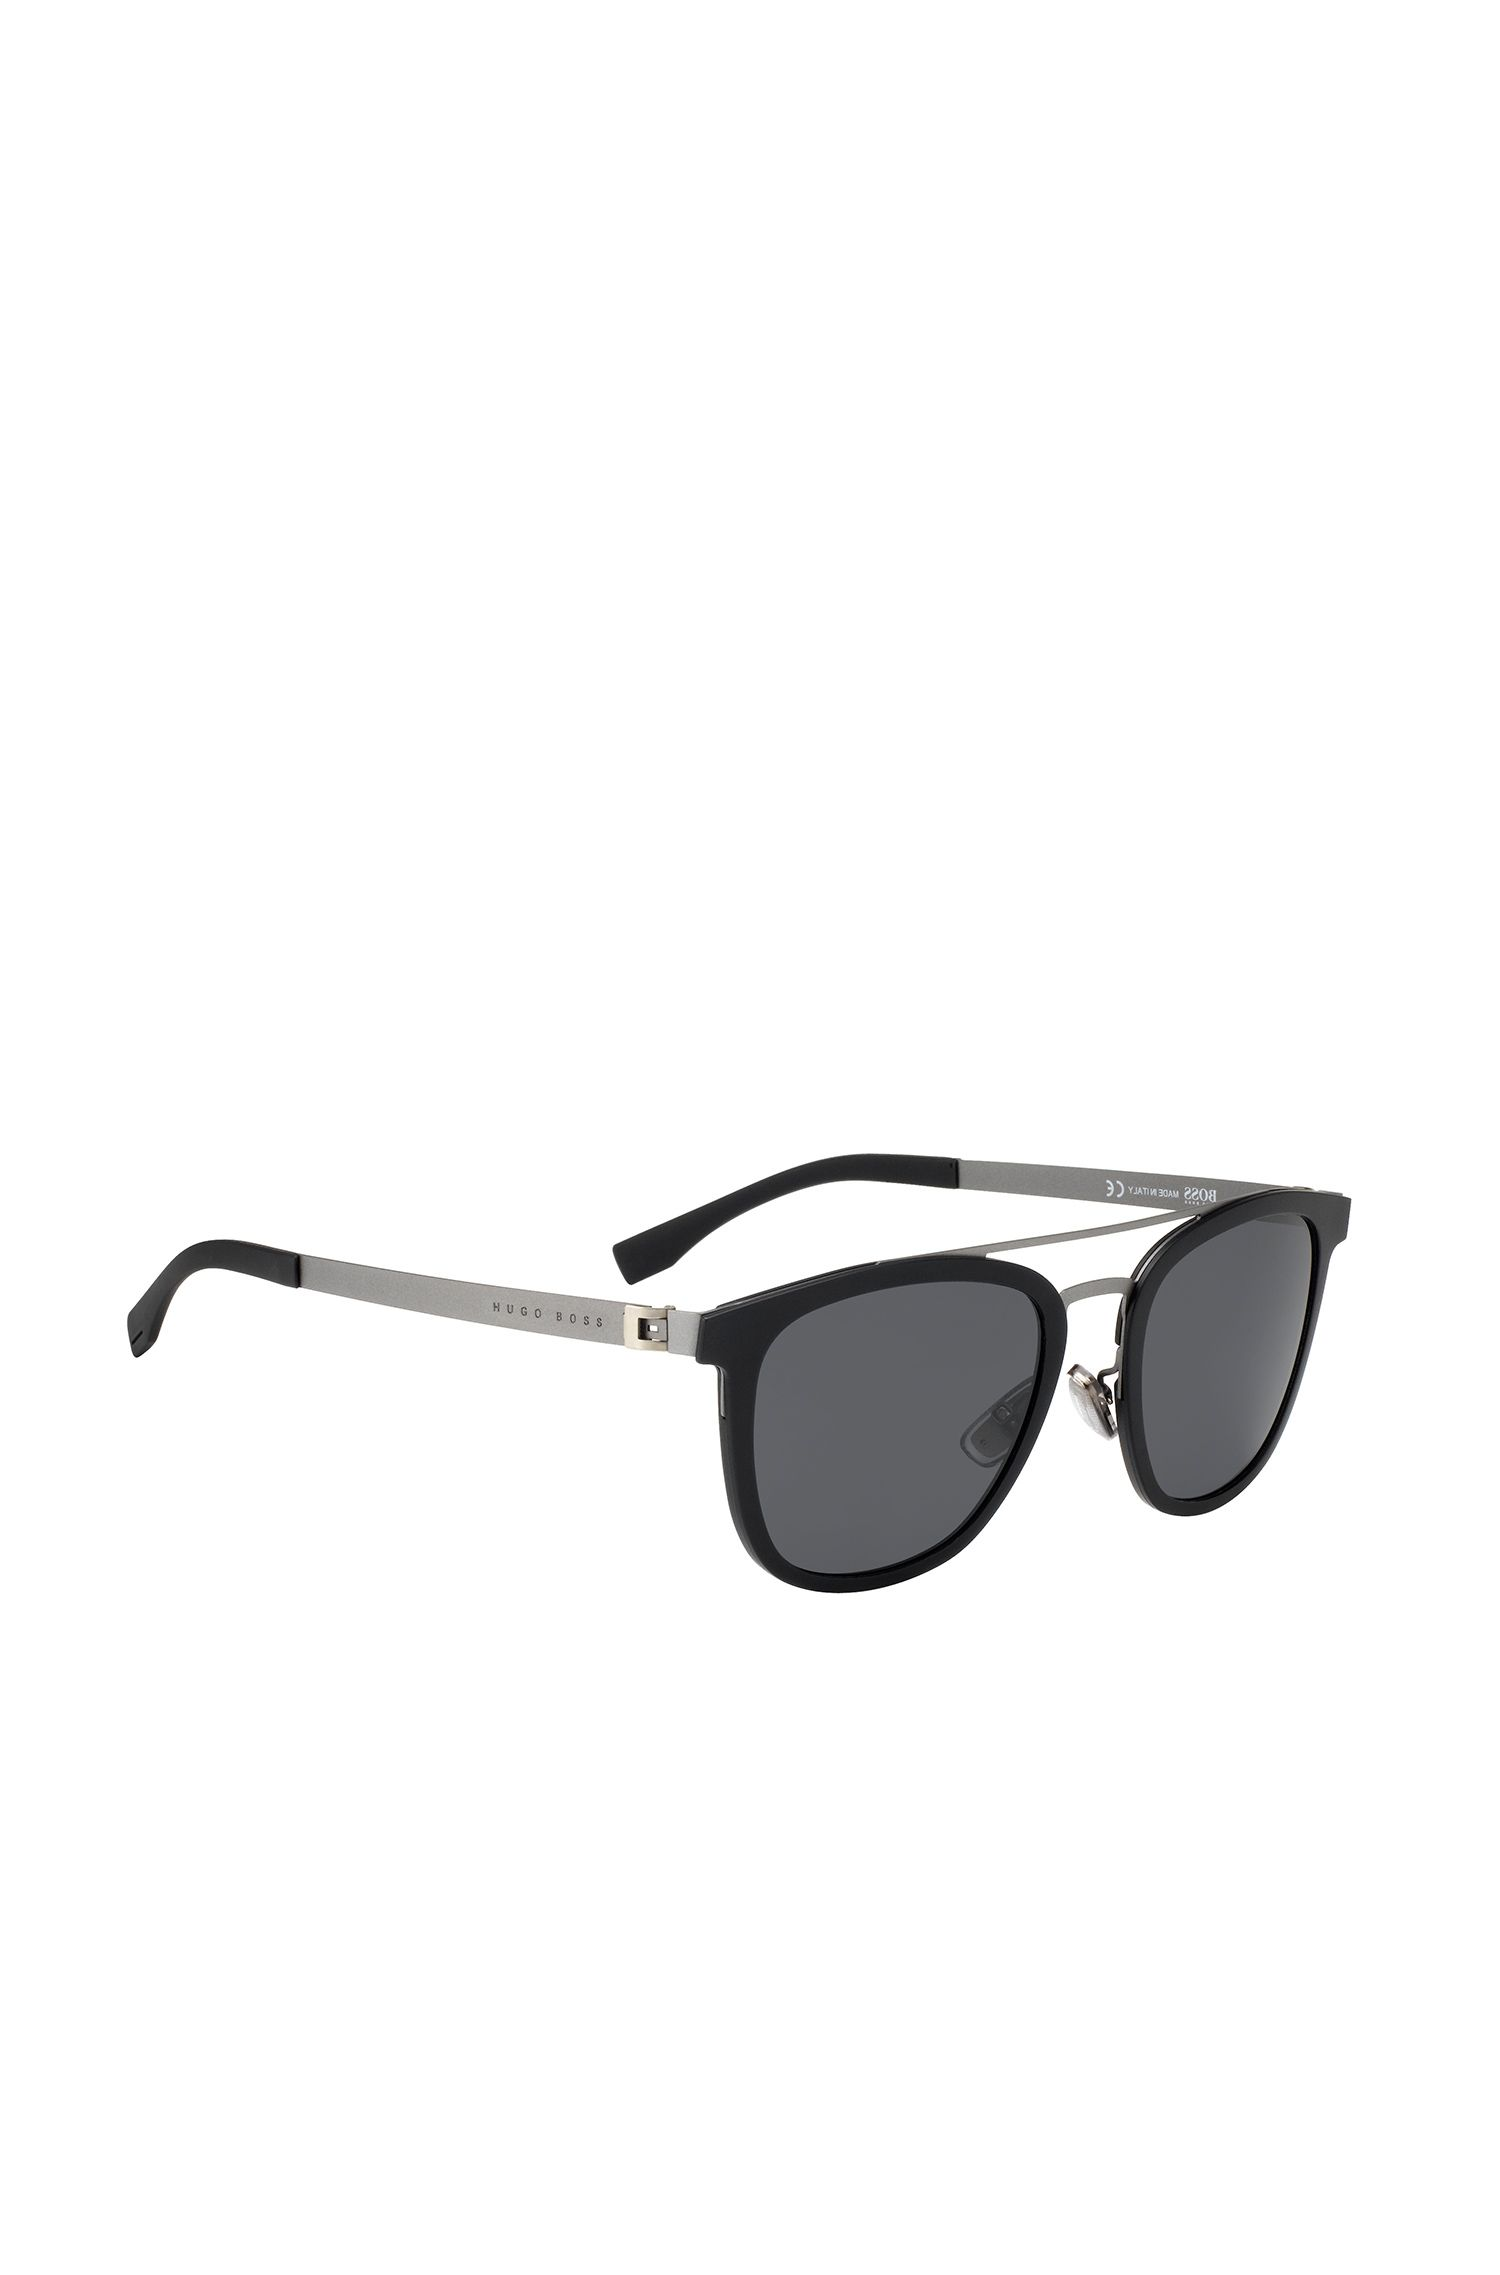 'BOSS 0838S' | Acetate Stainless Steel Round Sunglasses